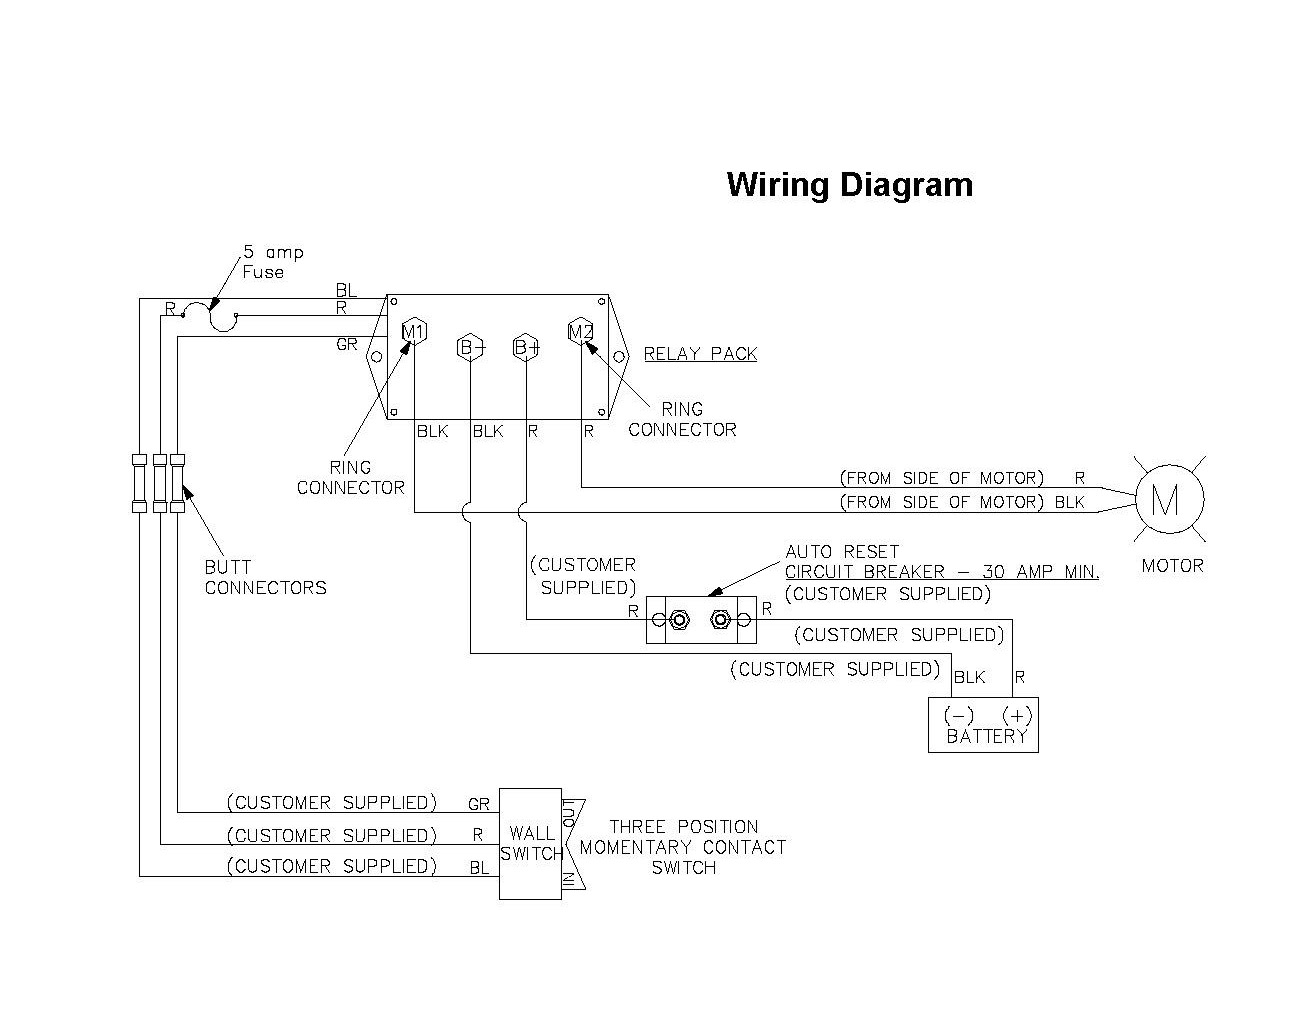 slide out wiring diagram fleetwood terry travel trailer floor plans.2005 fleetwood ...